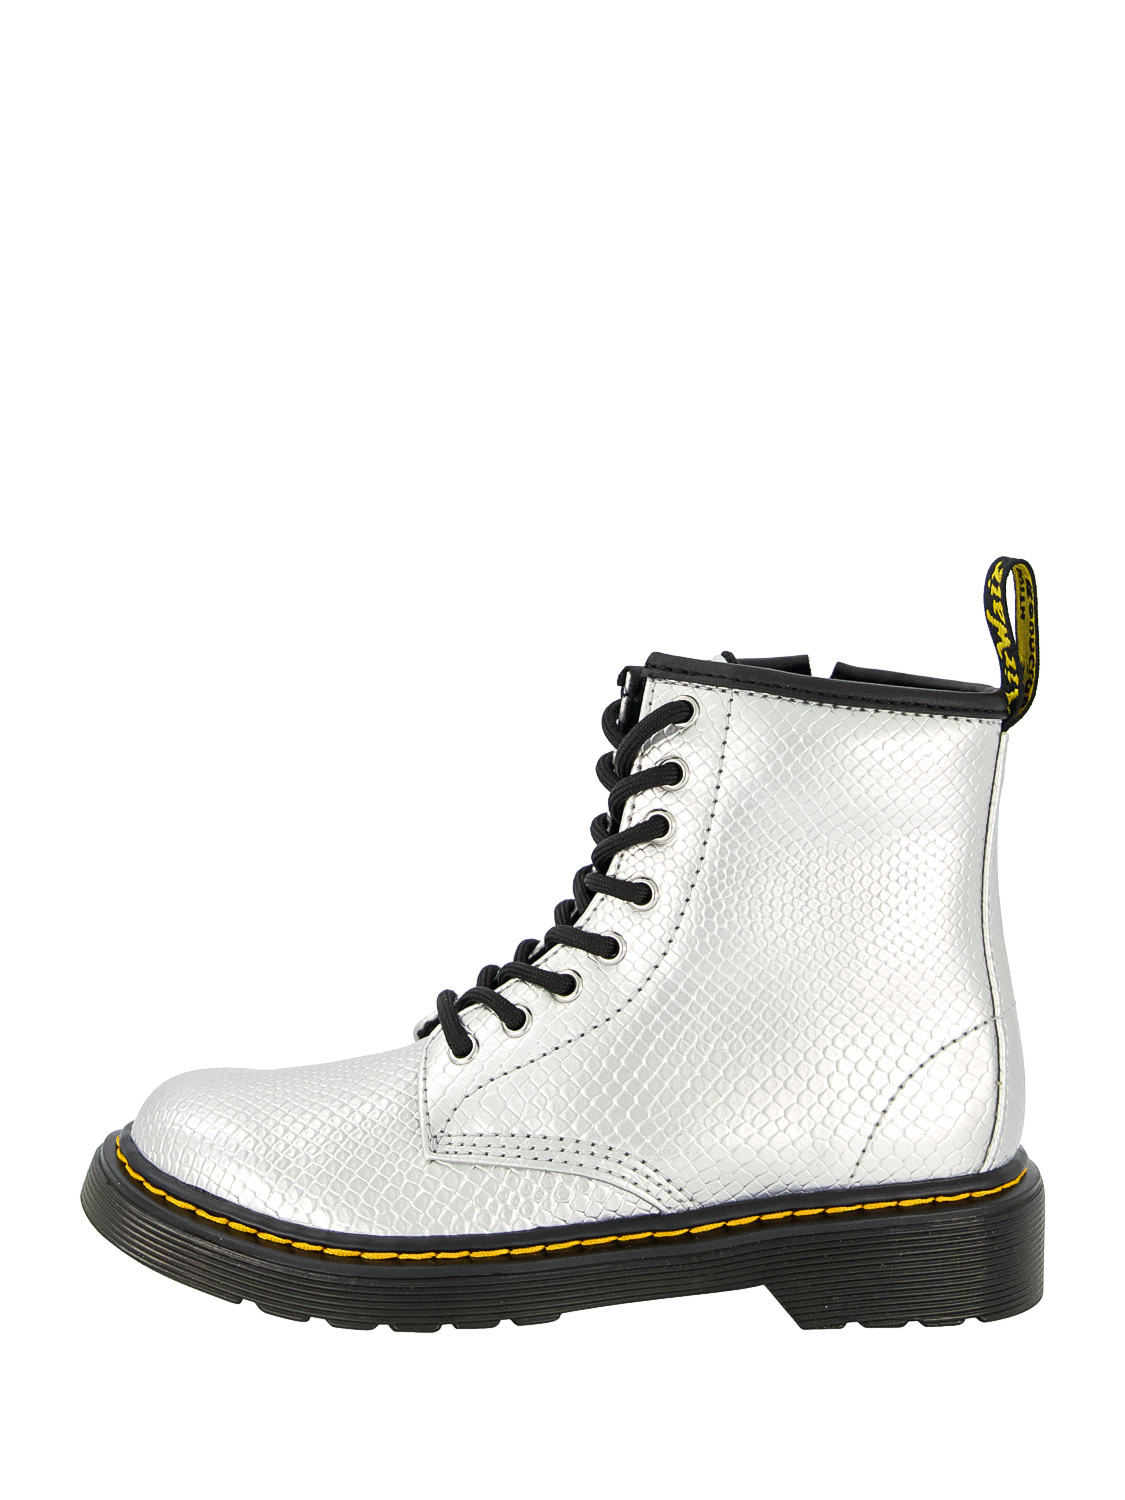 Dr. Martens KIDS BOOTS 1460 J SILVER REPTILE EMBOSS FOR GIRLS